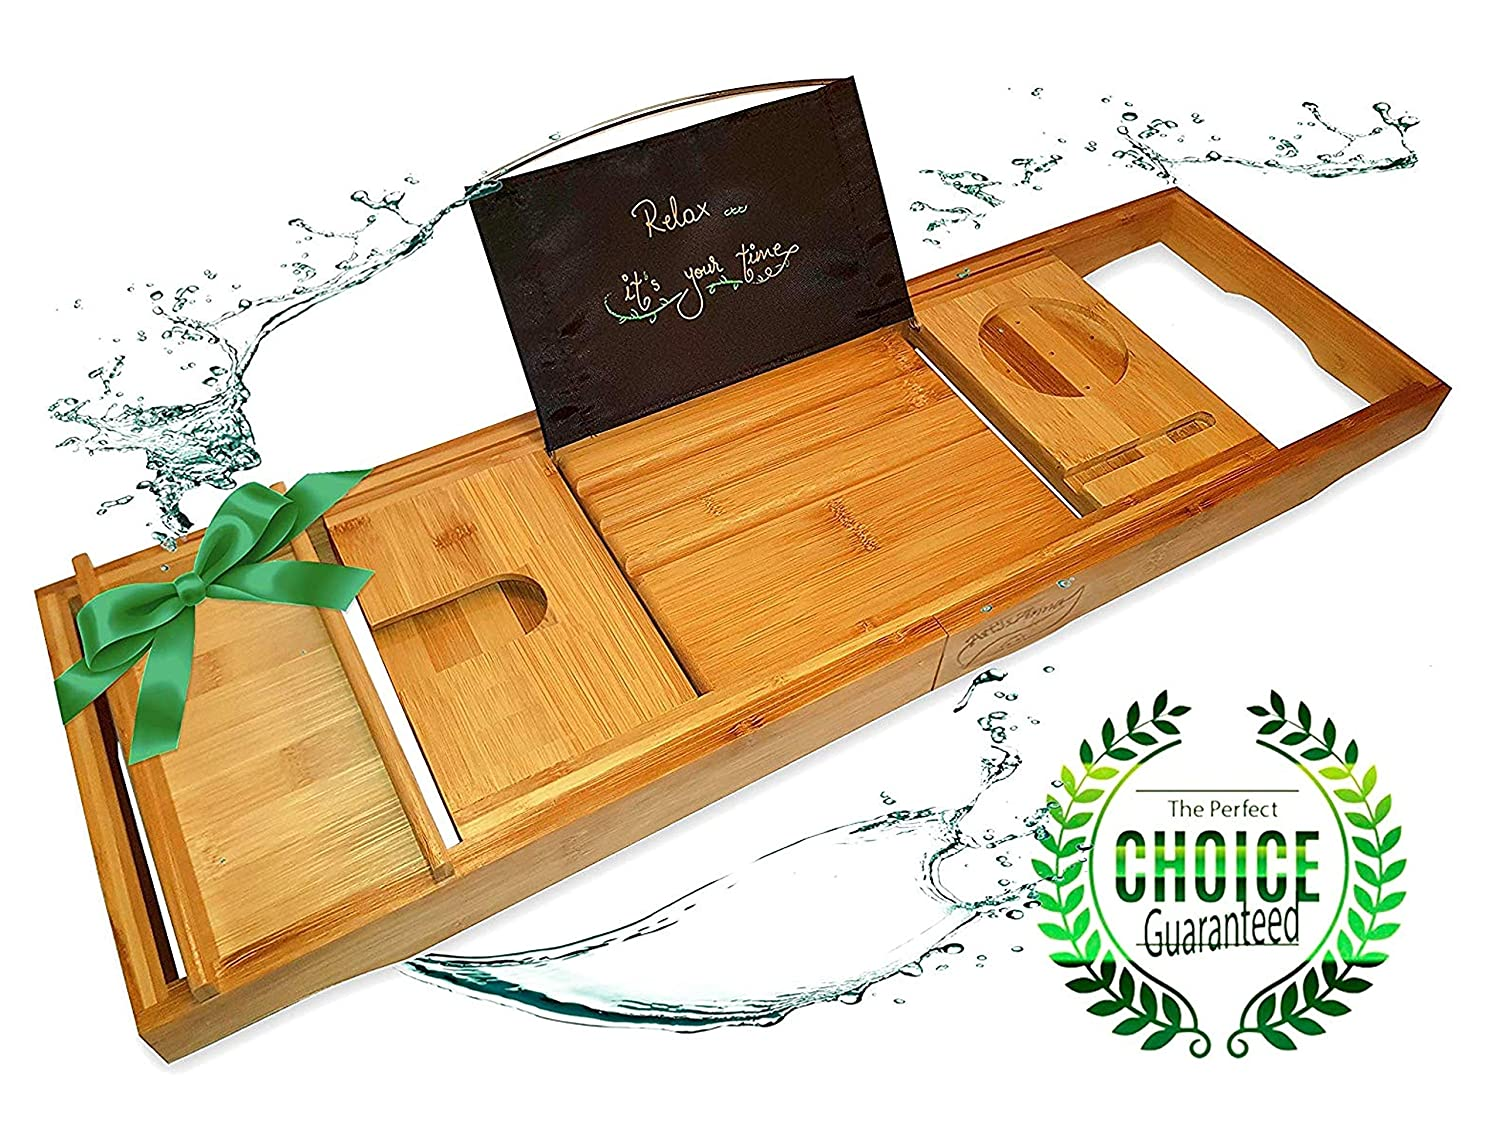 Extendable Luxury Book For Bath Caddies & Storage Bath New Fashion Relux Premium 100% Natural Bamboo Bath Caddy Bridge